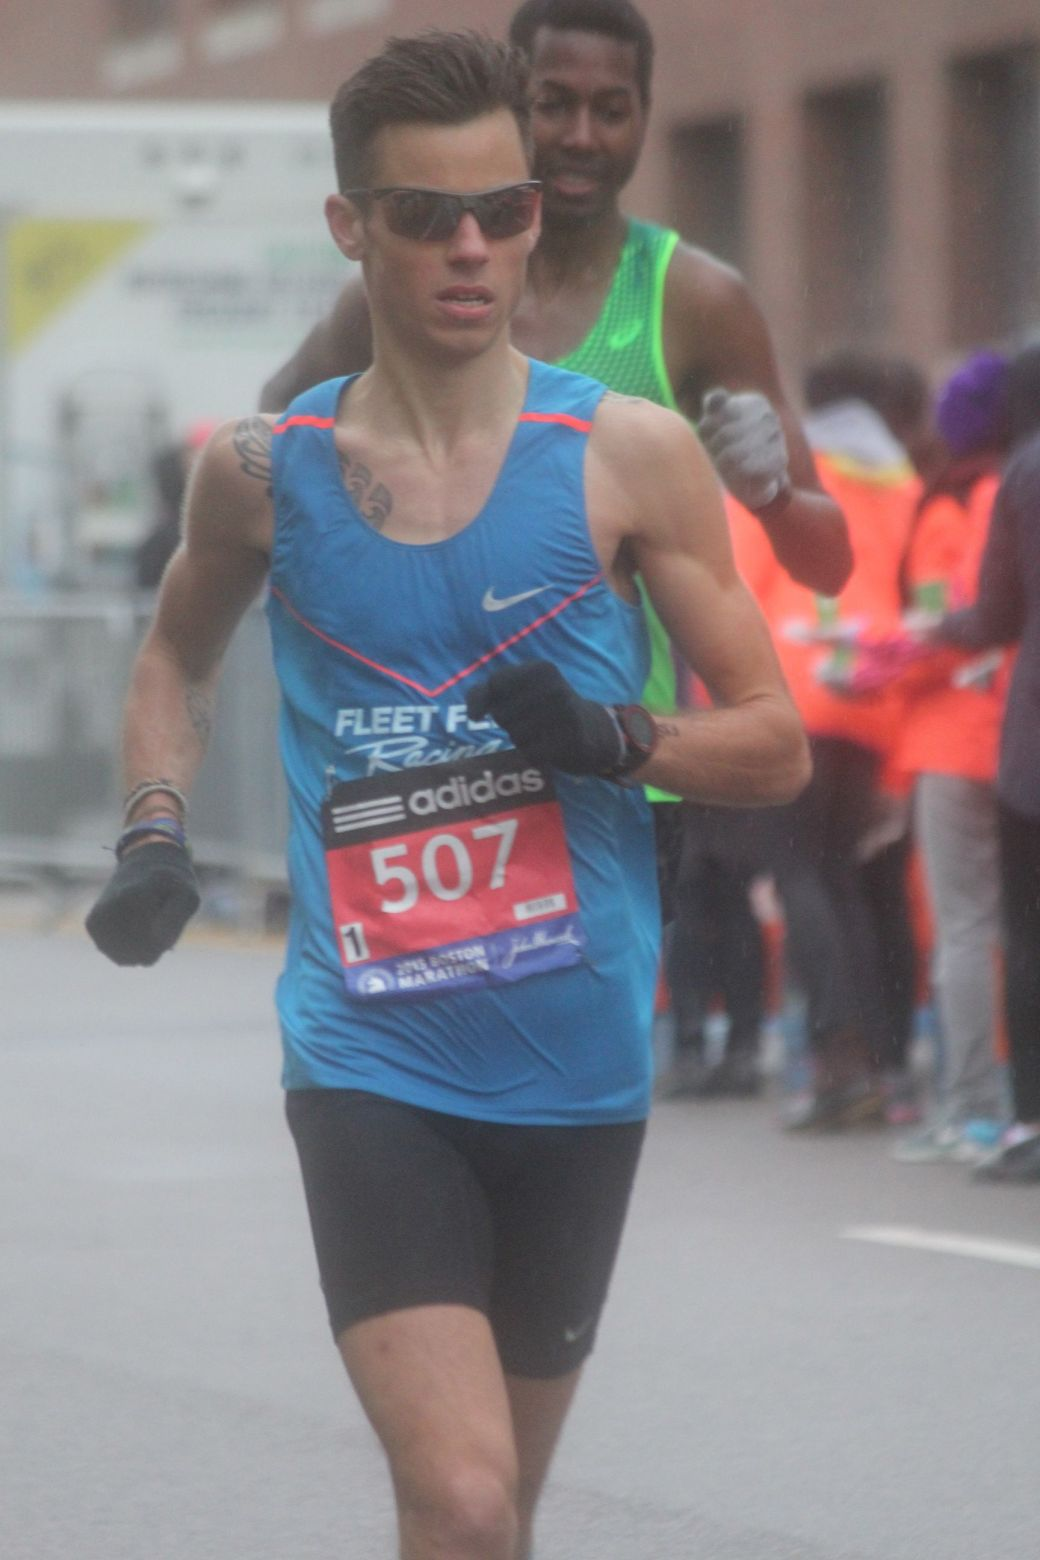 boston marathon april 20 2015 racer number 507